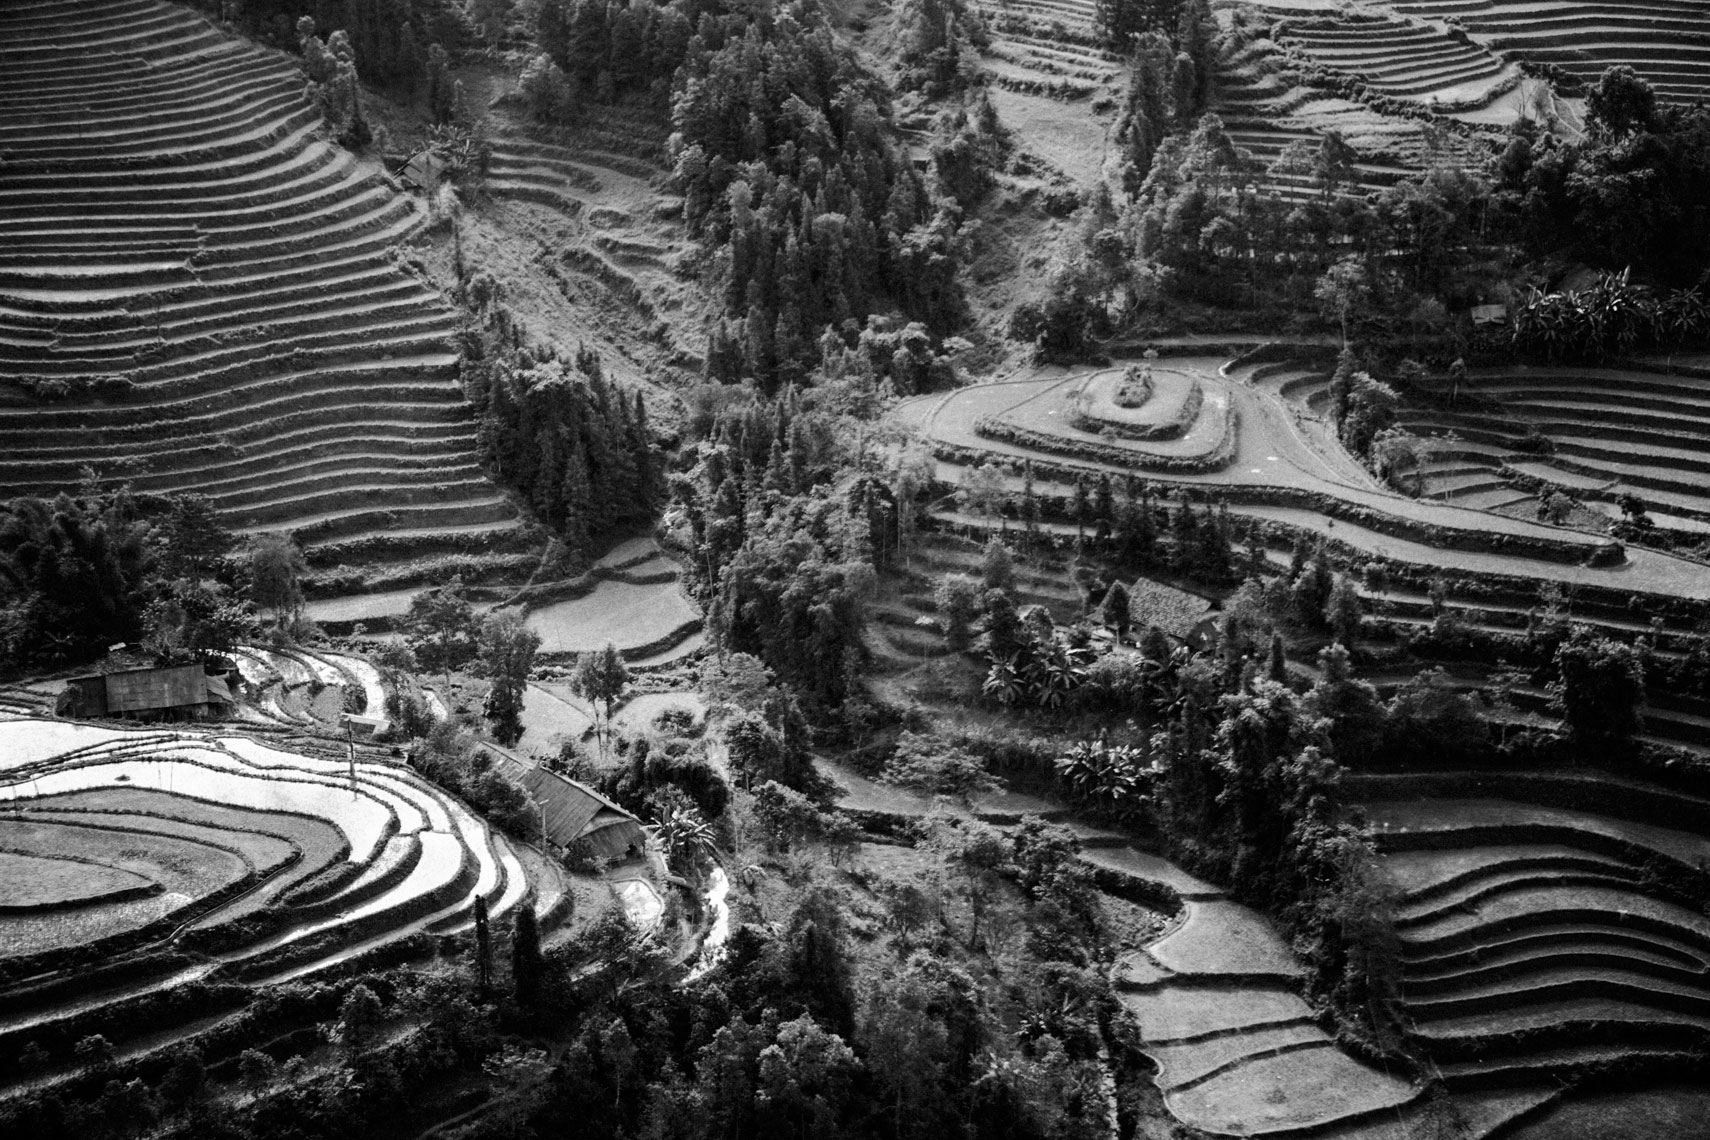 rice-paddies-bac-ha